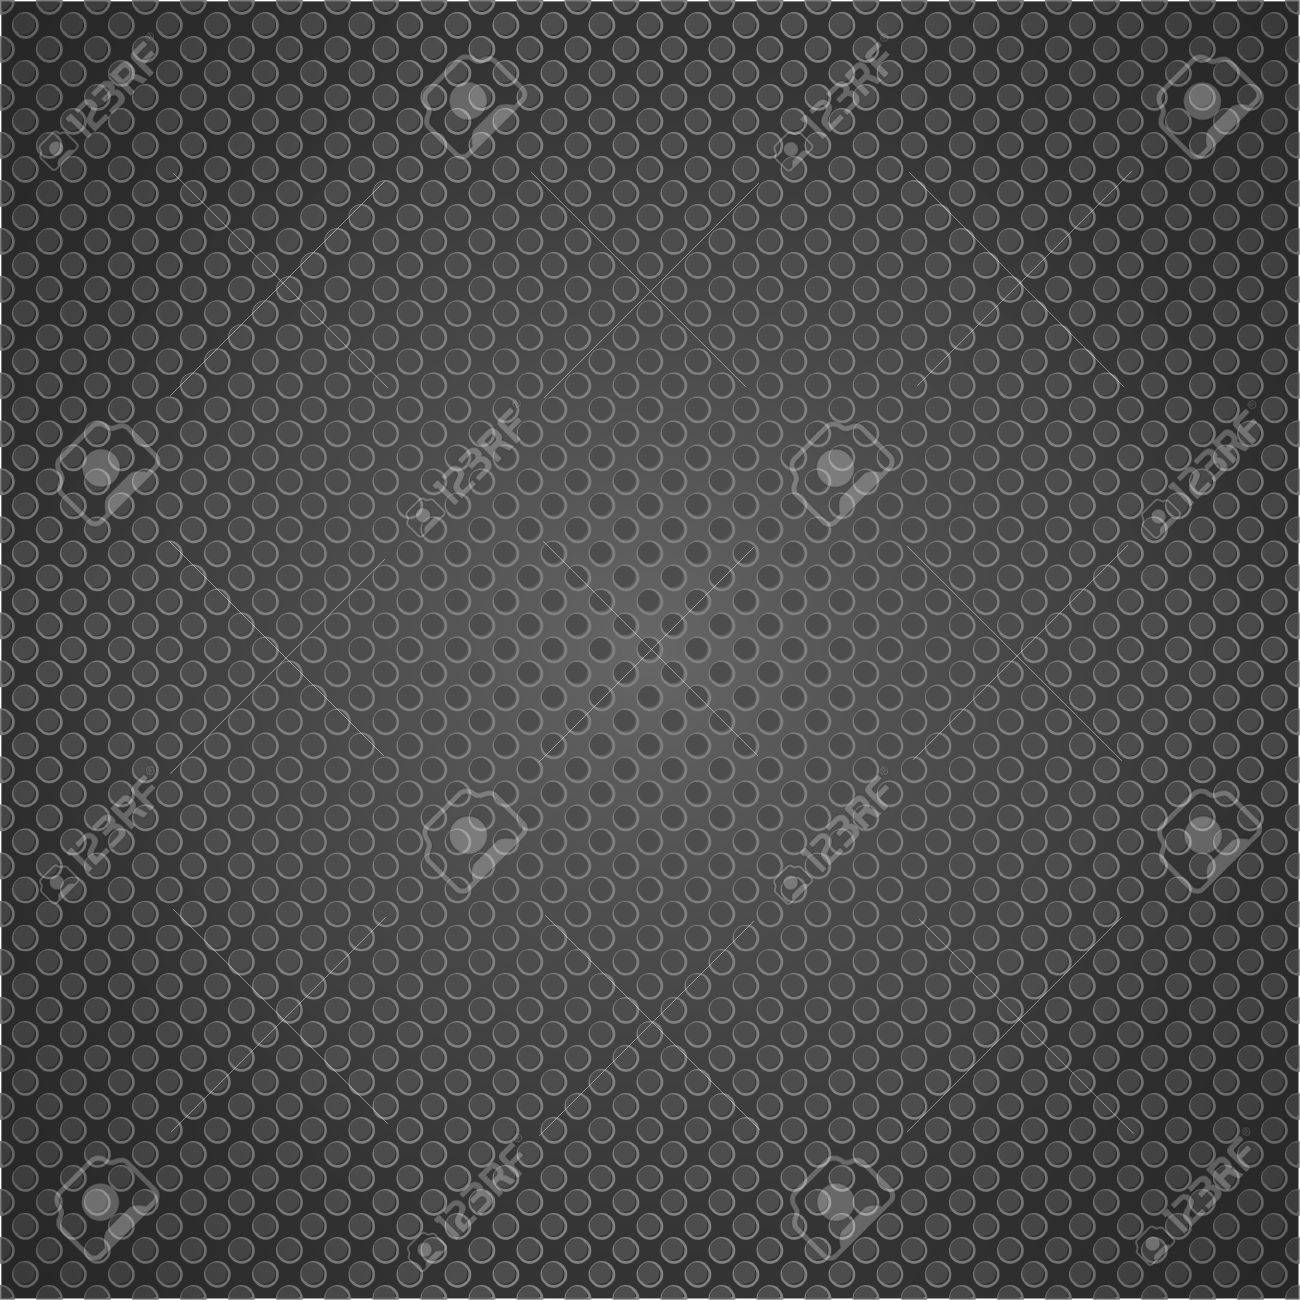 Texture of holed metal Stock Vector - 12157389